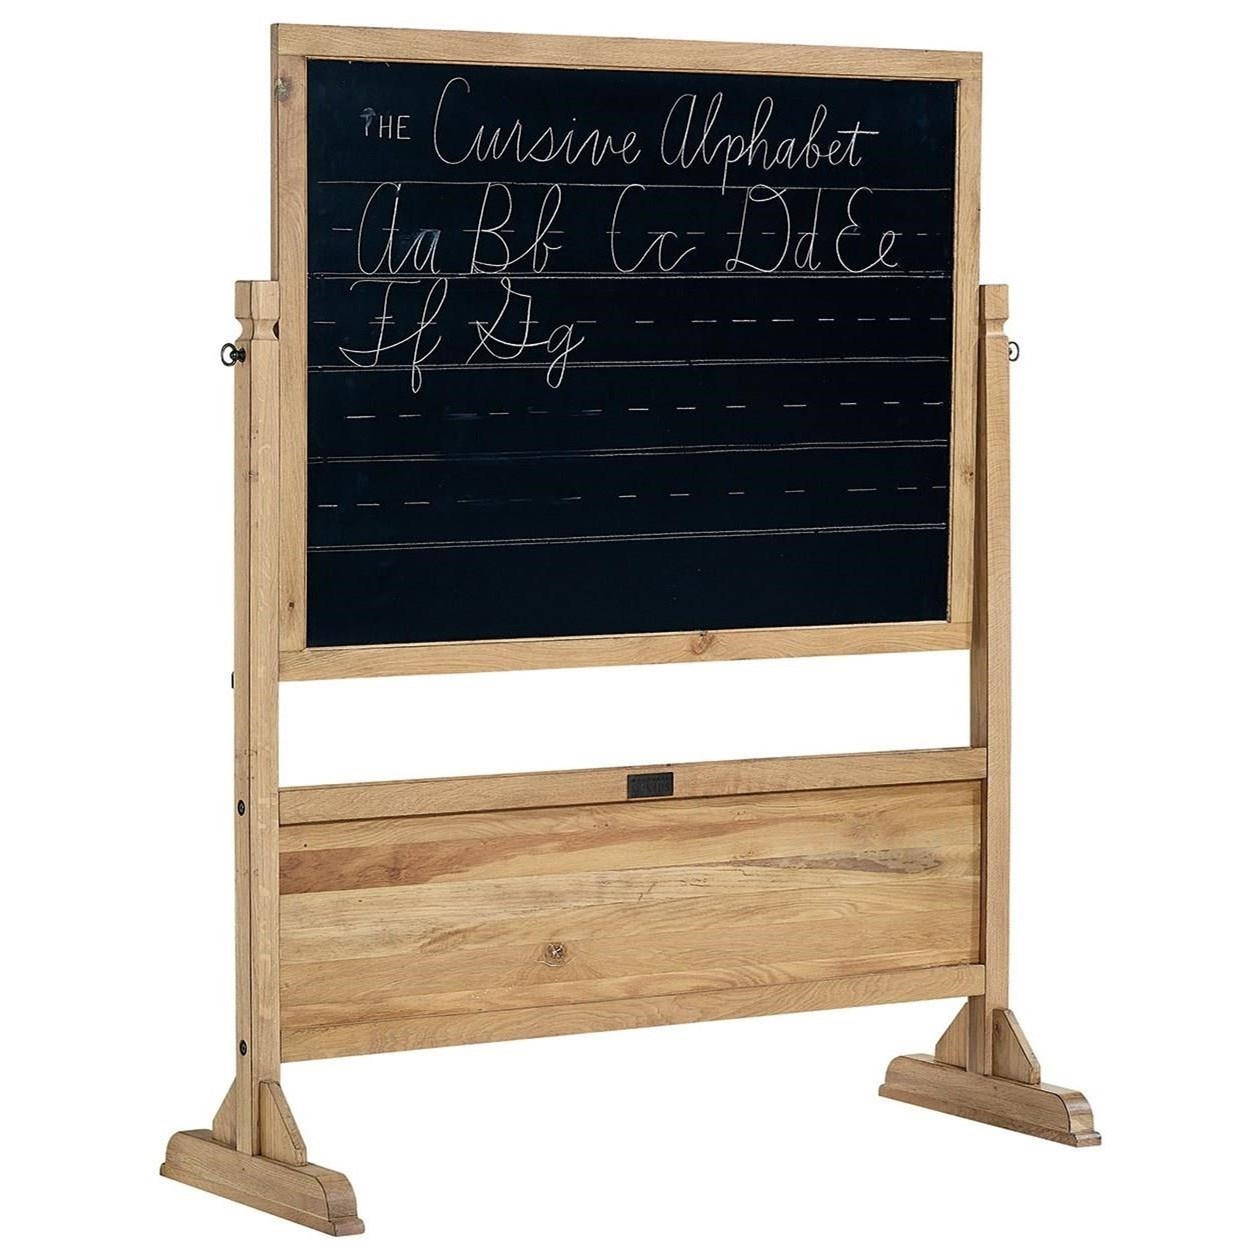 Magnolia Home by Joanna Gaines Accent Elements Homeroom Standing Chalkboard  - Item Number: 8031916Y